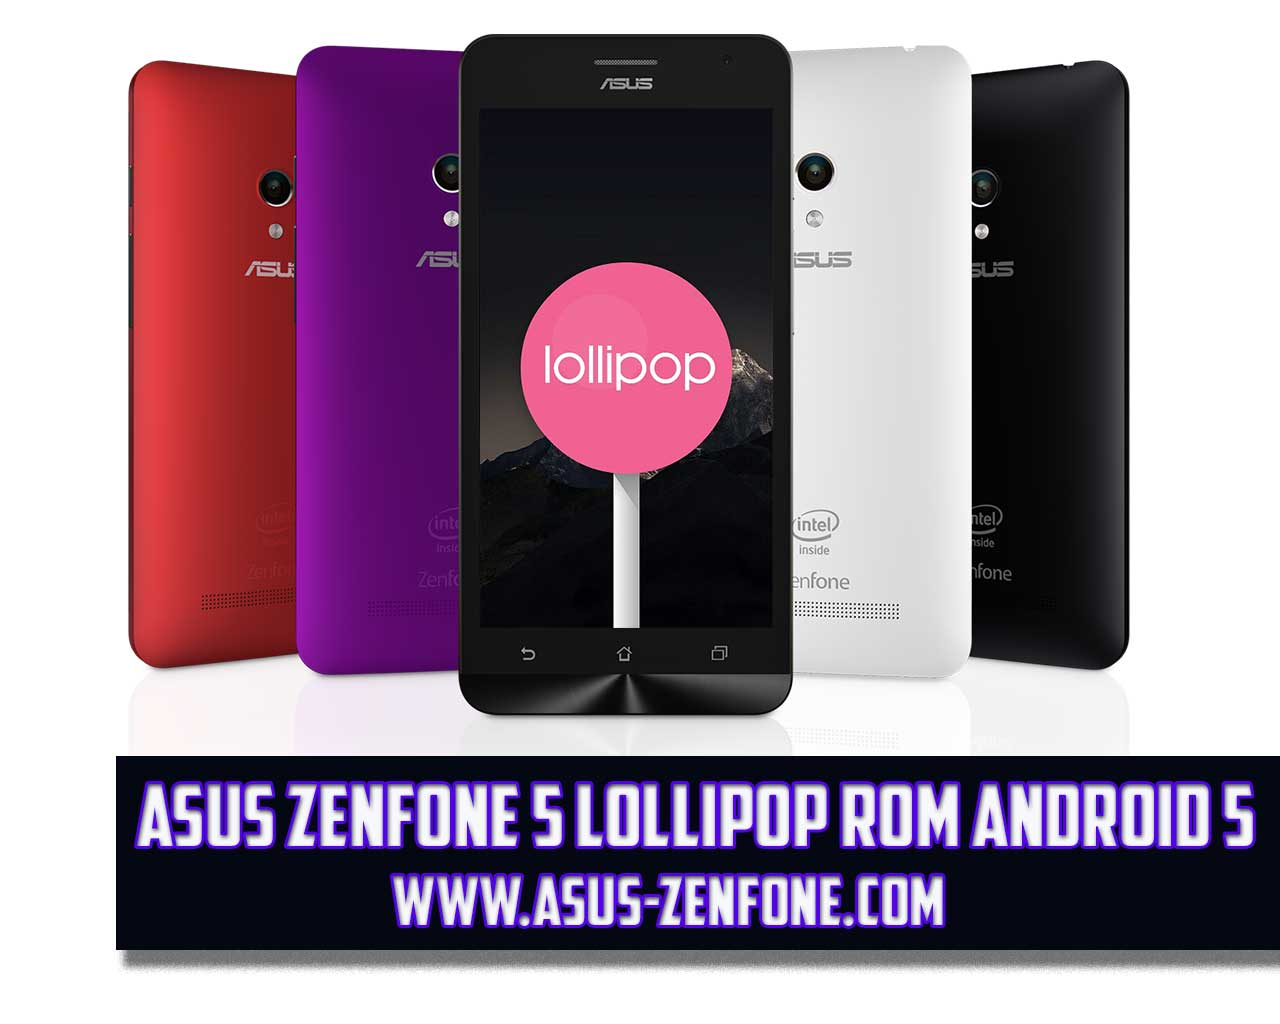 ROM] ASUS Zenfone 5 A500CG Android 5 0 Lollipop Download ~ Asus